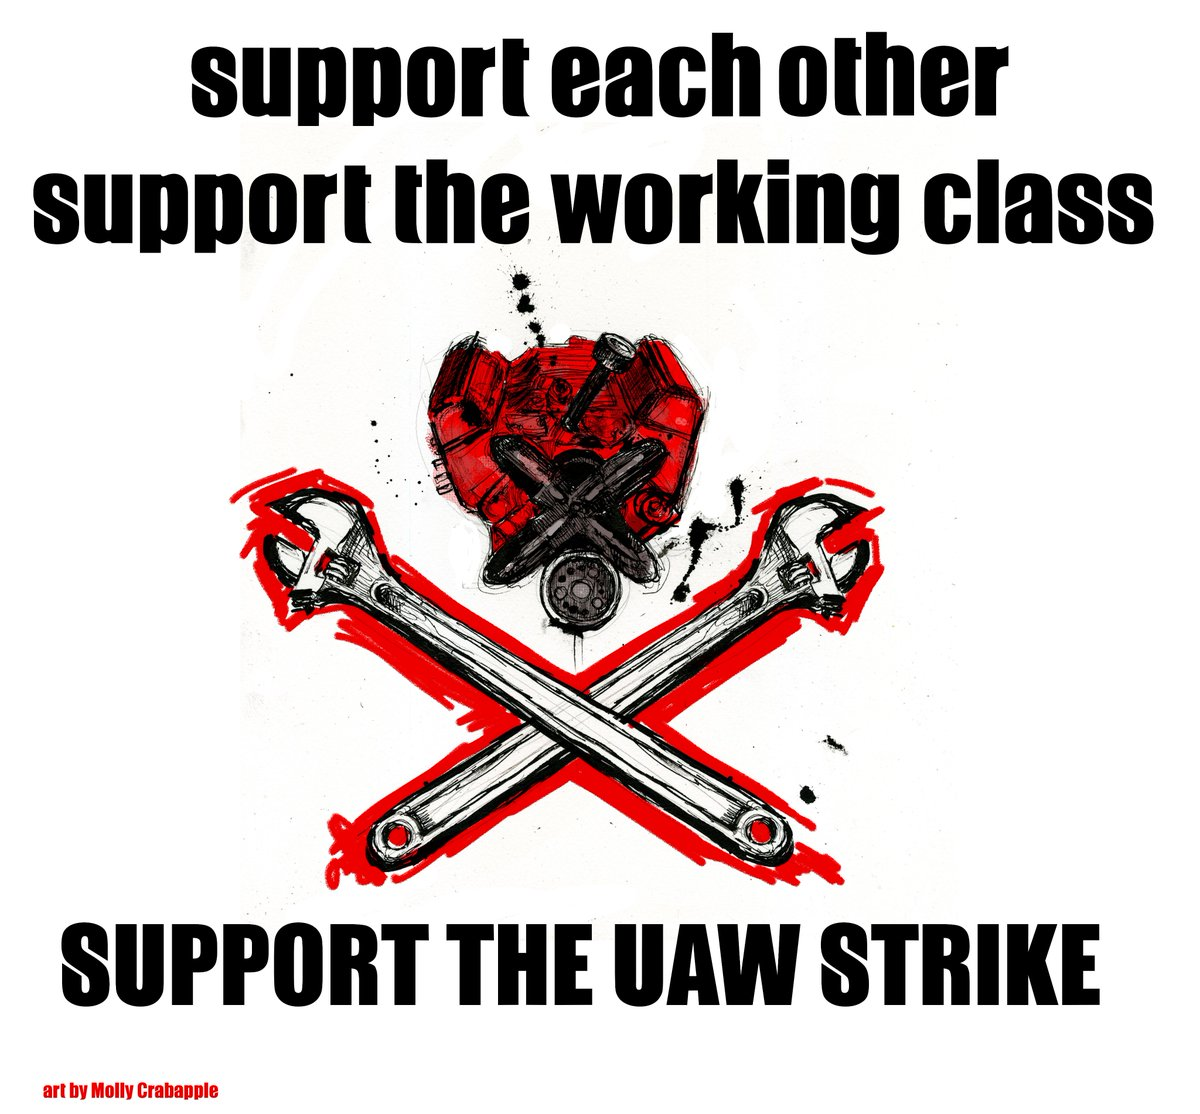 All support for the 46,000 striking UAW workers vox.com/policy-and-pol… #UAW #UAWStrike